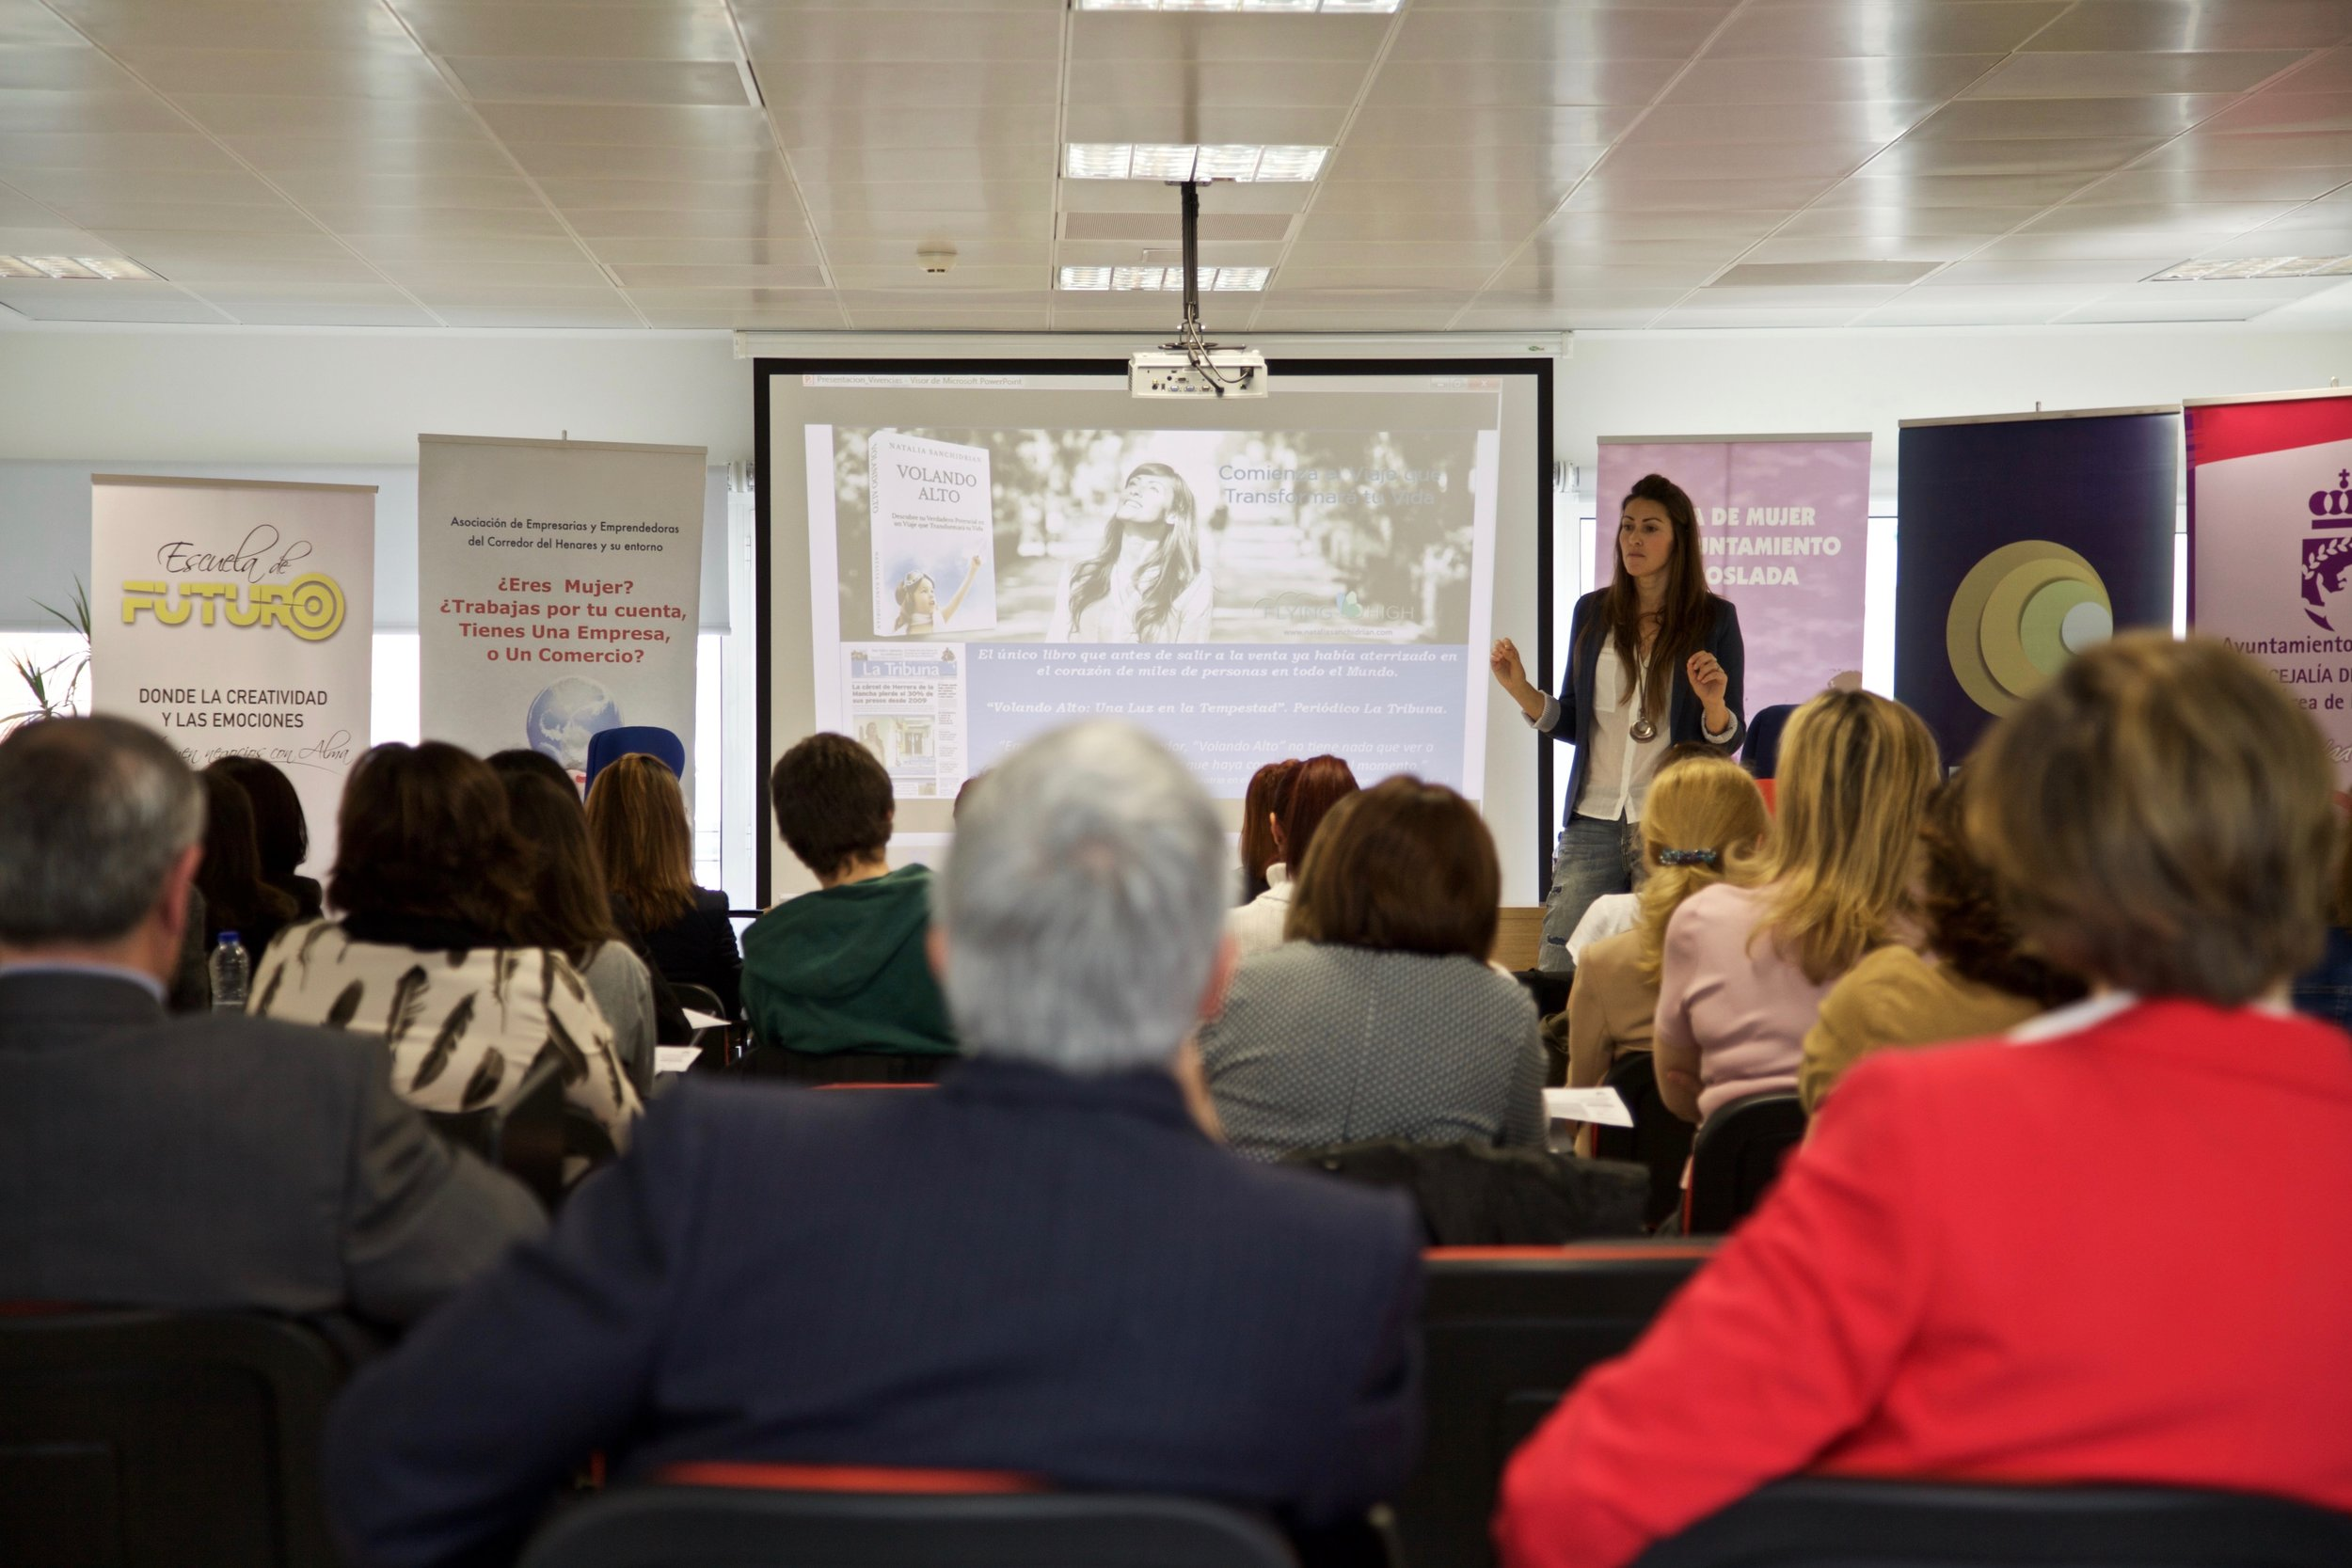 4-business-development-motivational-professional-training-courses-customerservice-values-thecompanycode-nataliasanchidrian-october2018.jpg